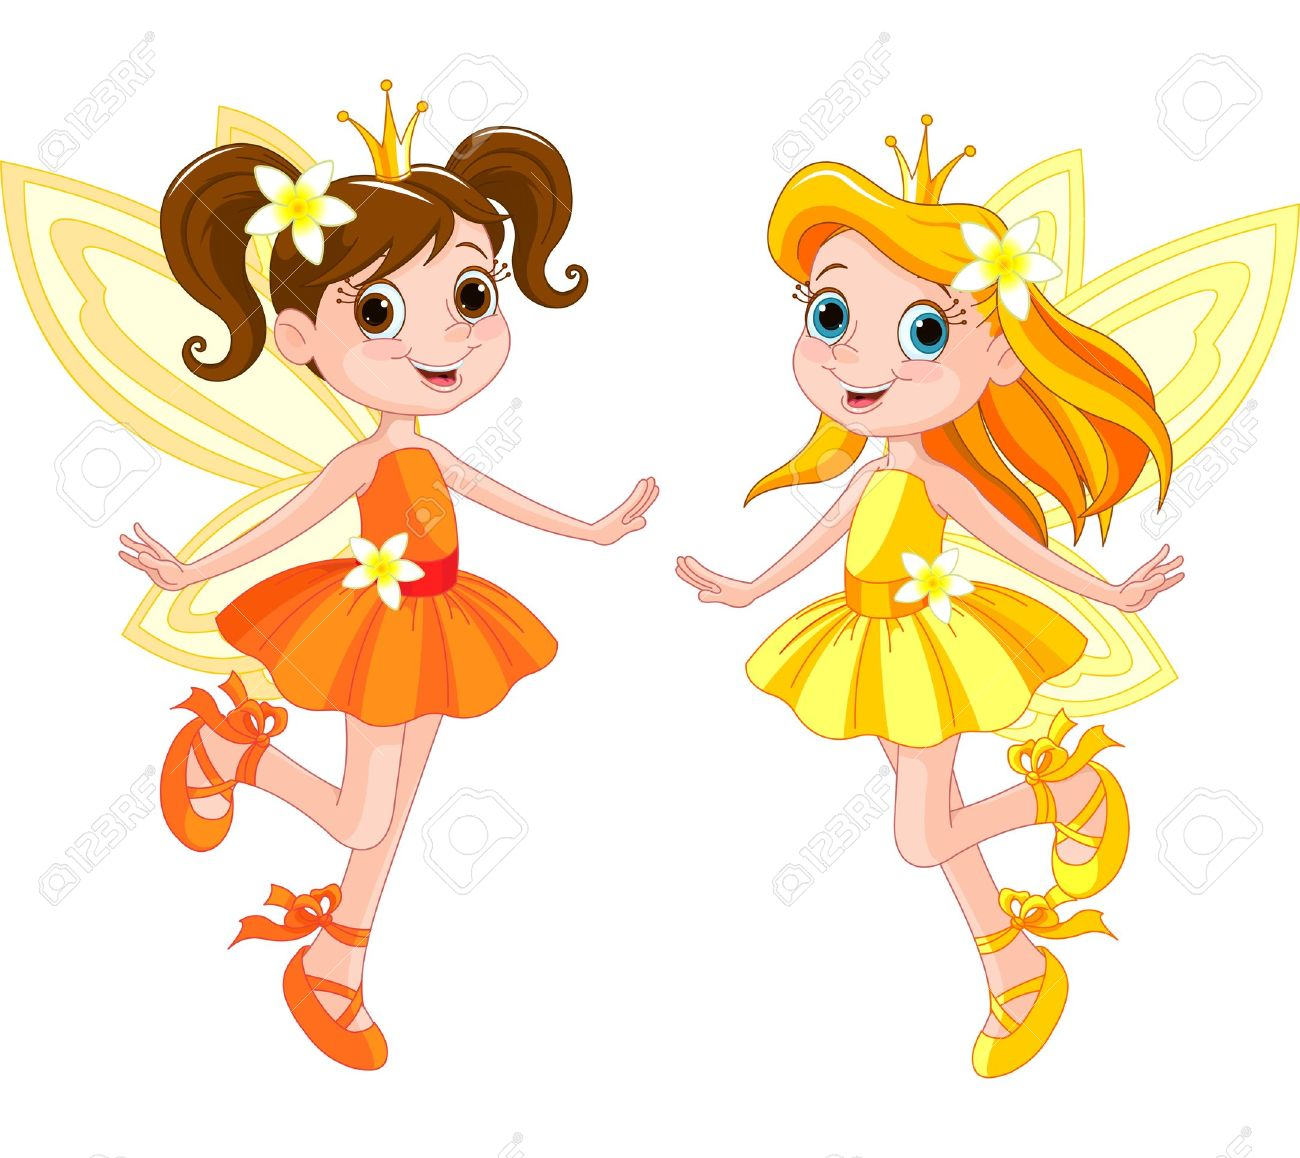 Fairies clipart summer. Fairy picture free download